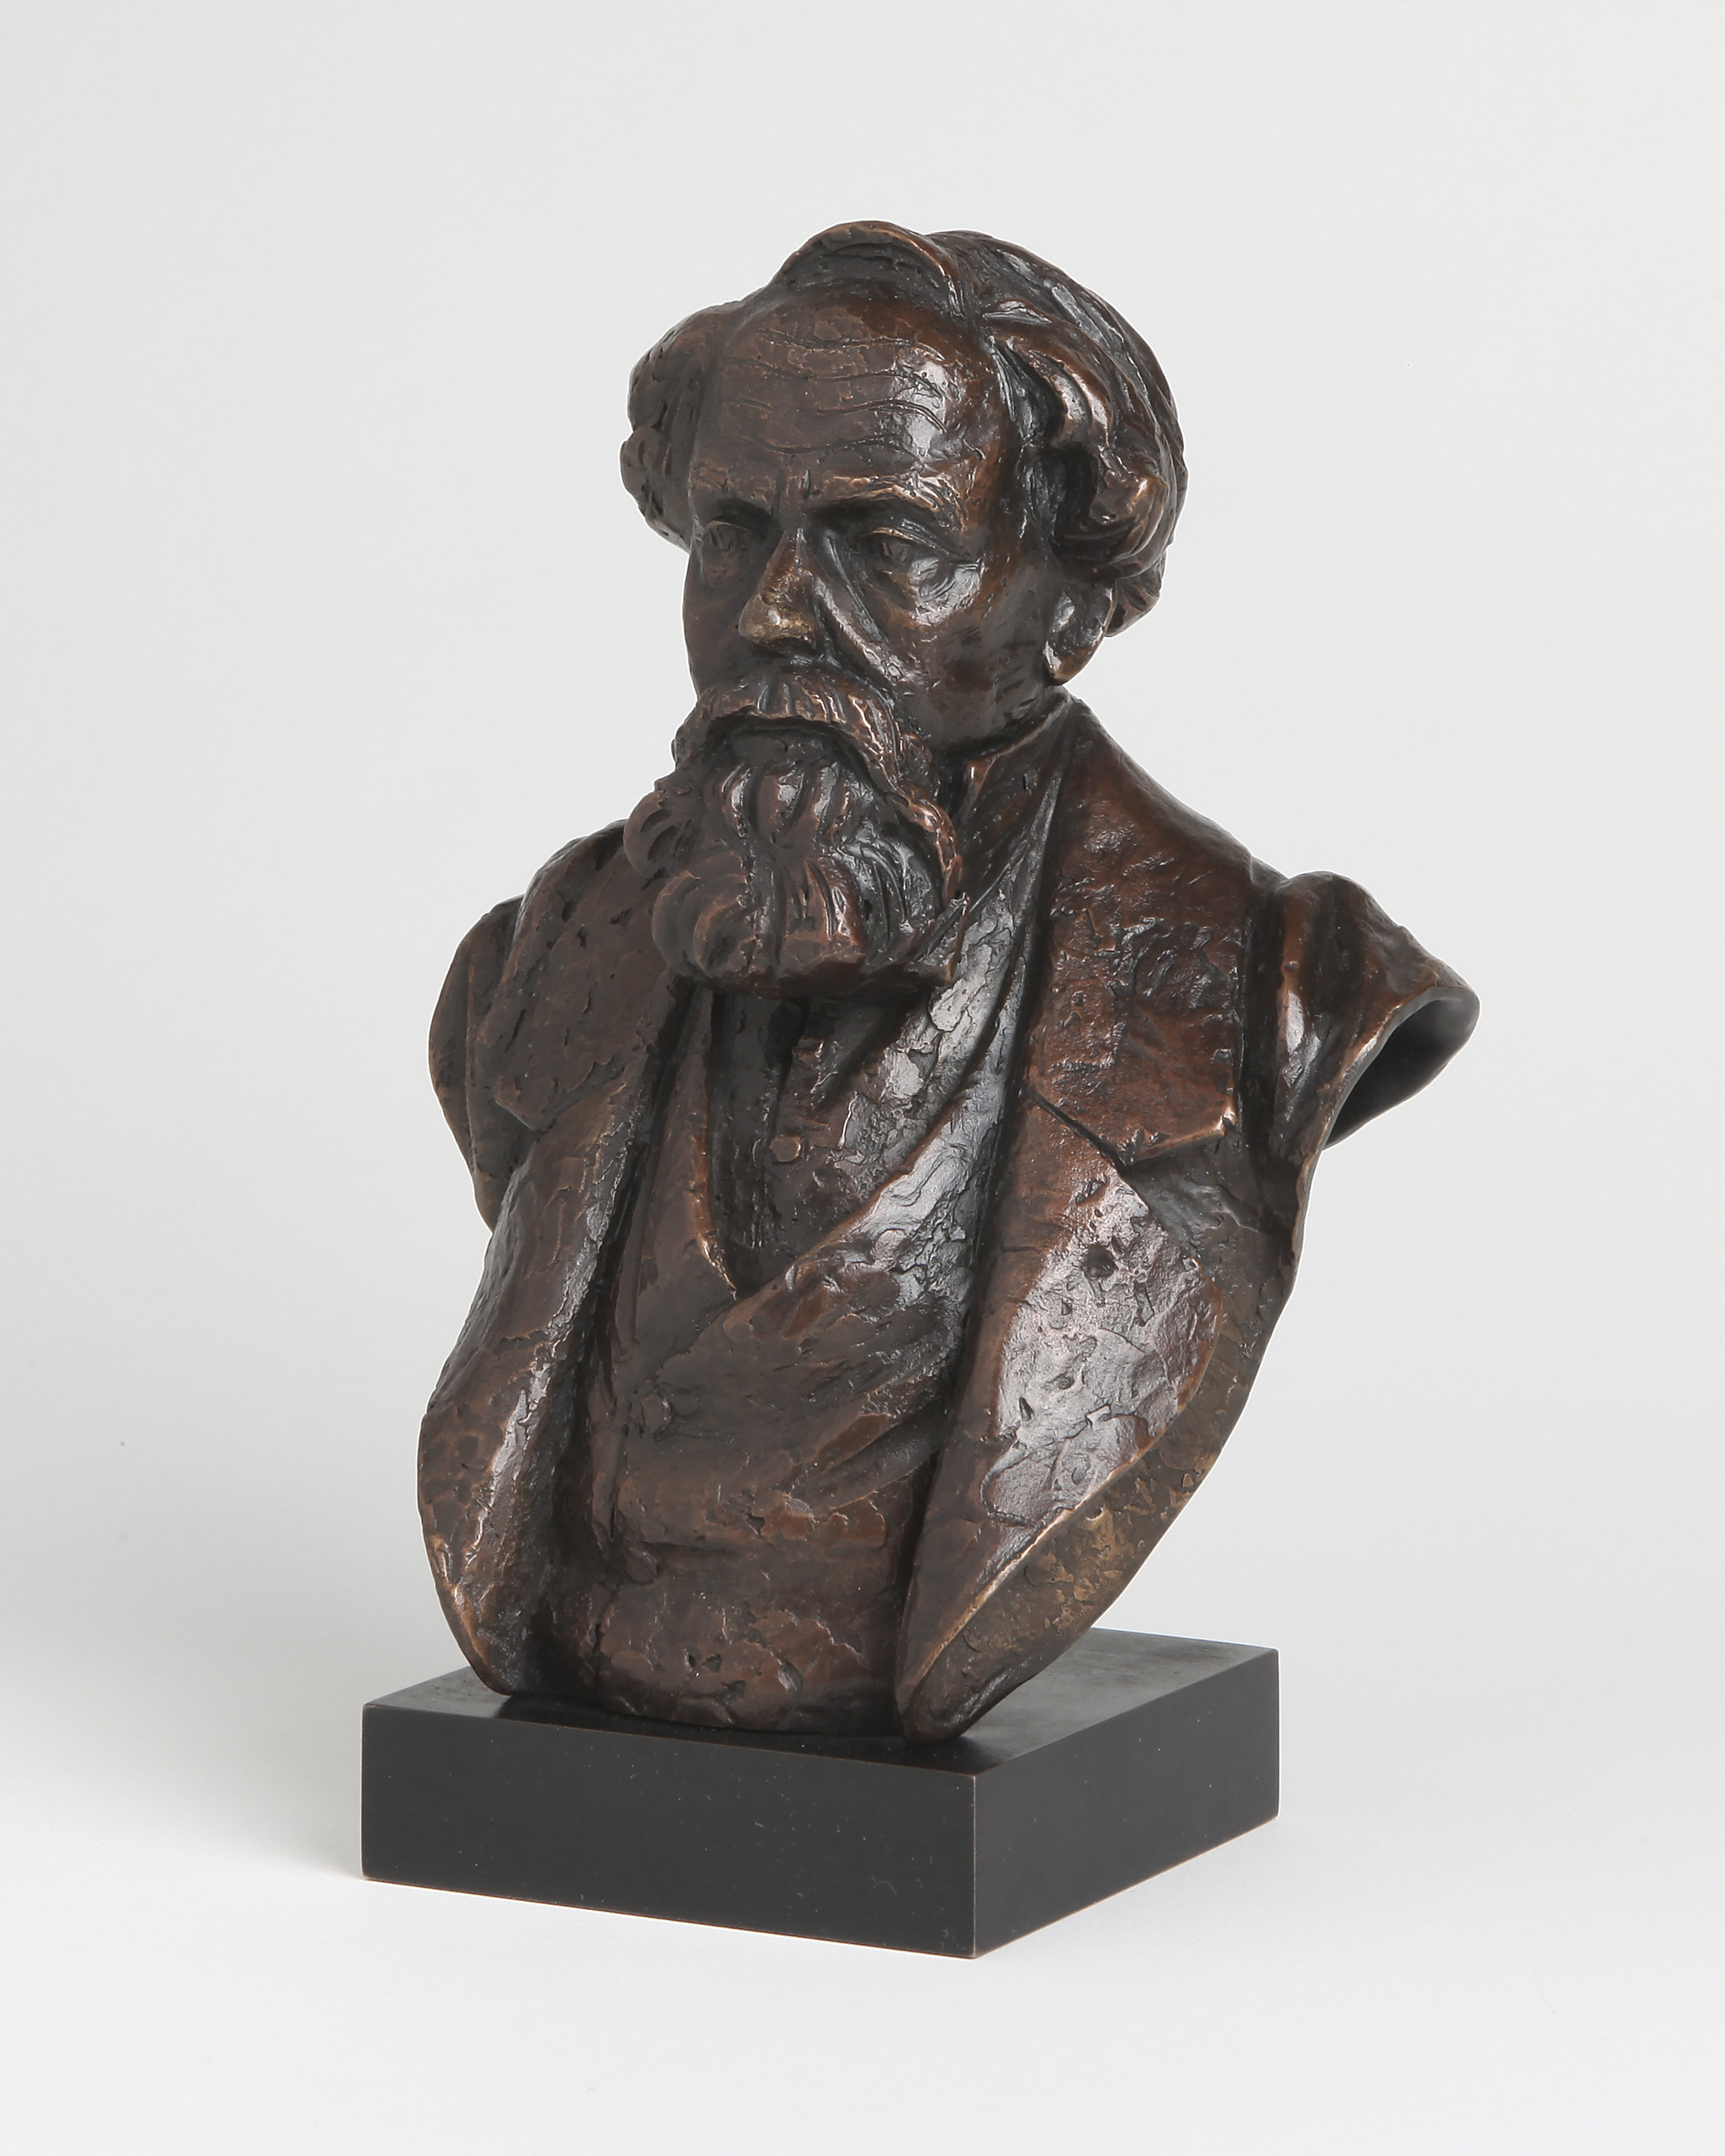 38. Charles Dickens bust from maquette.